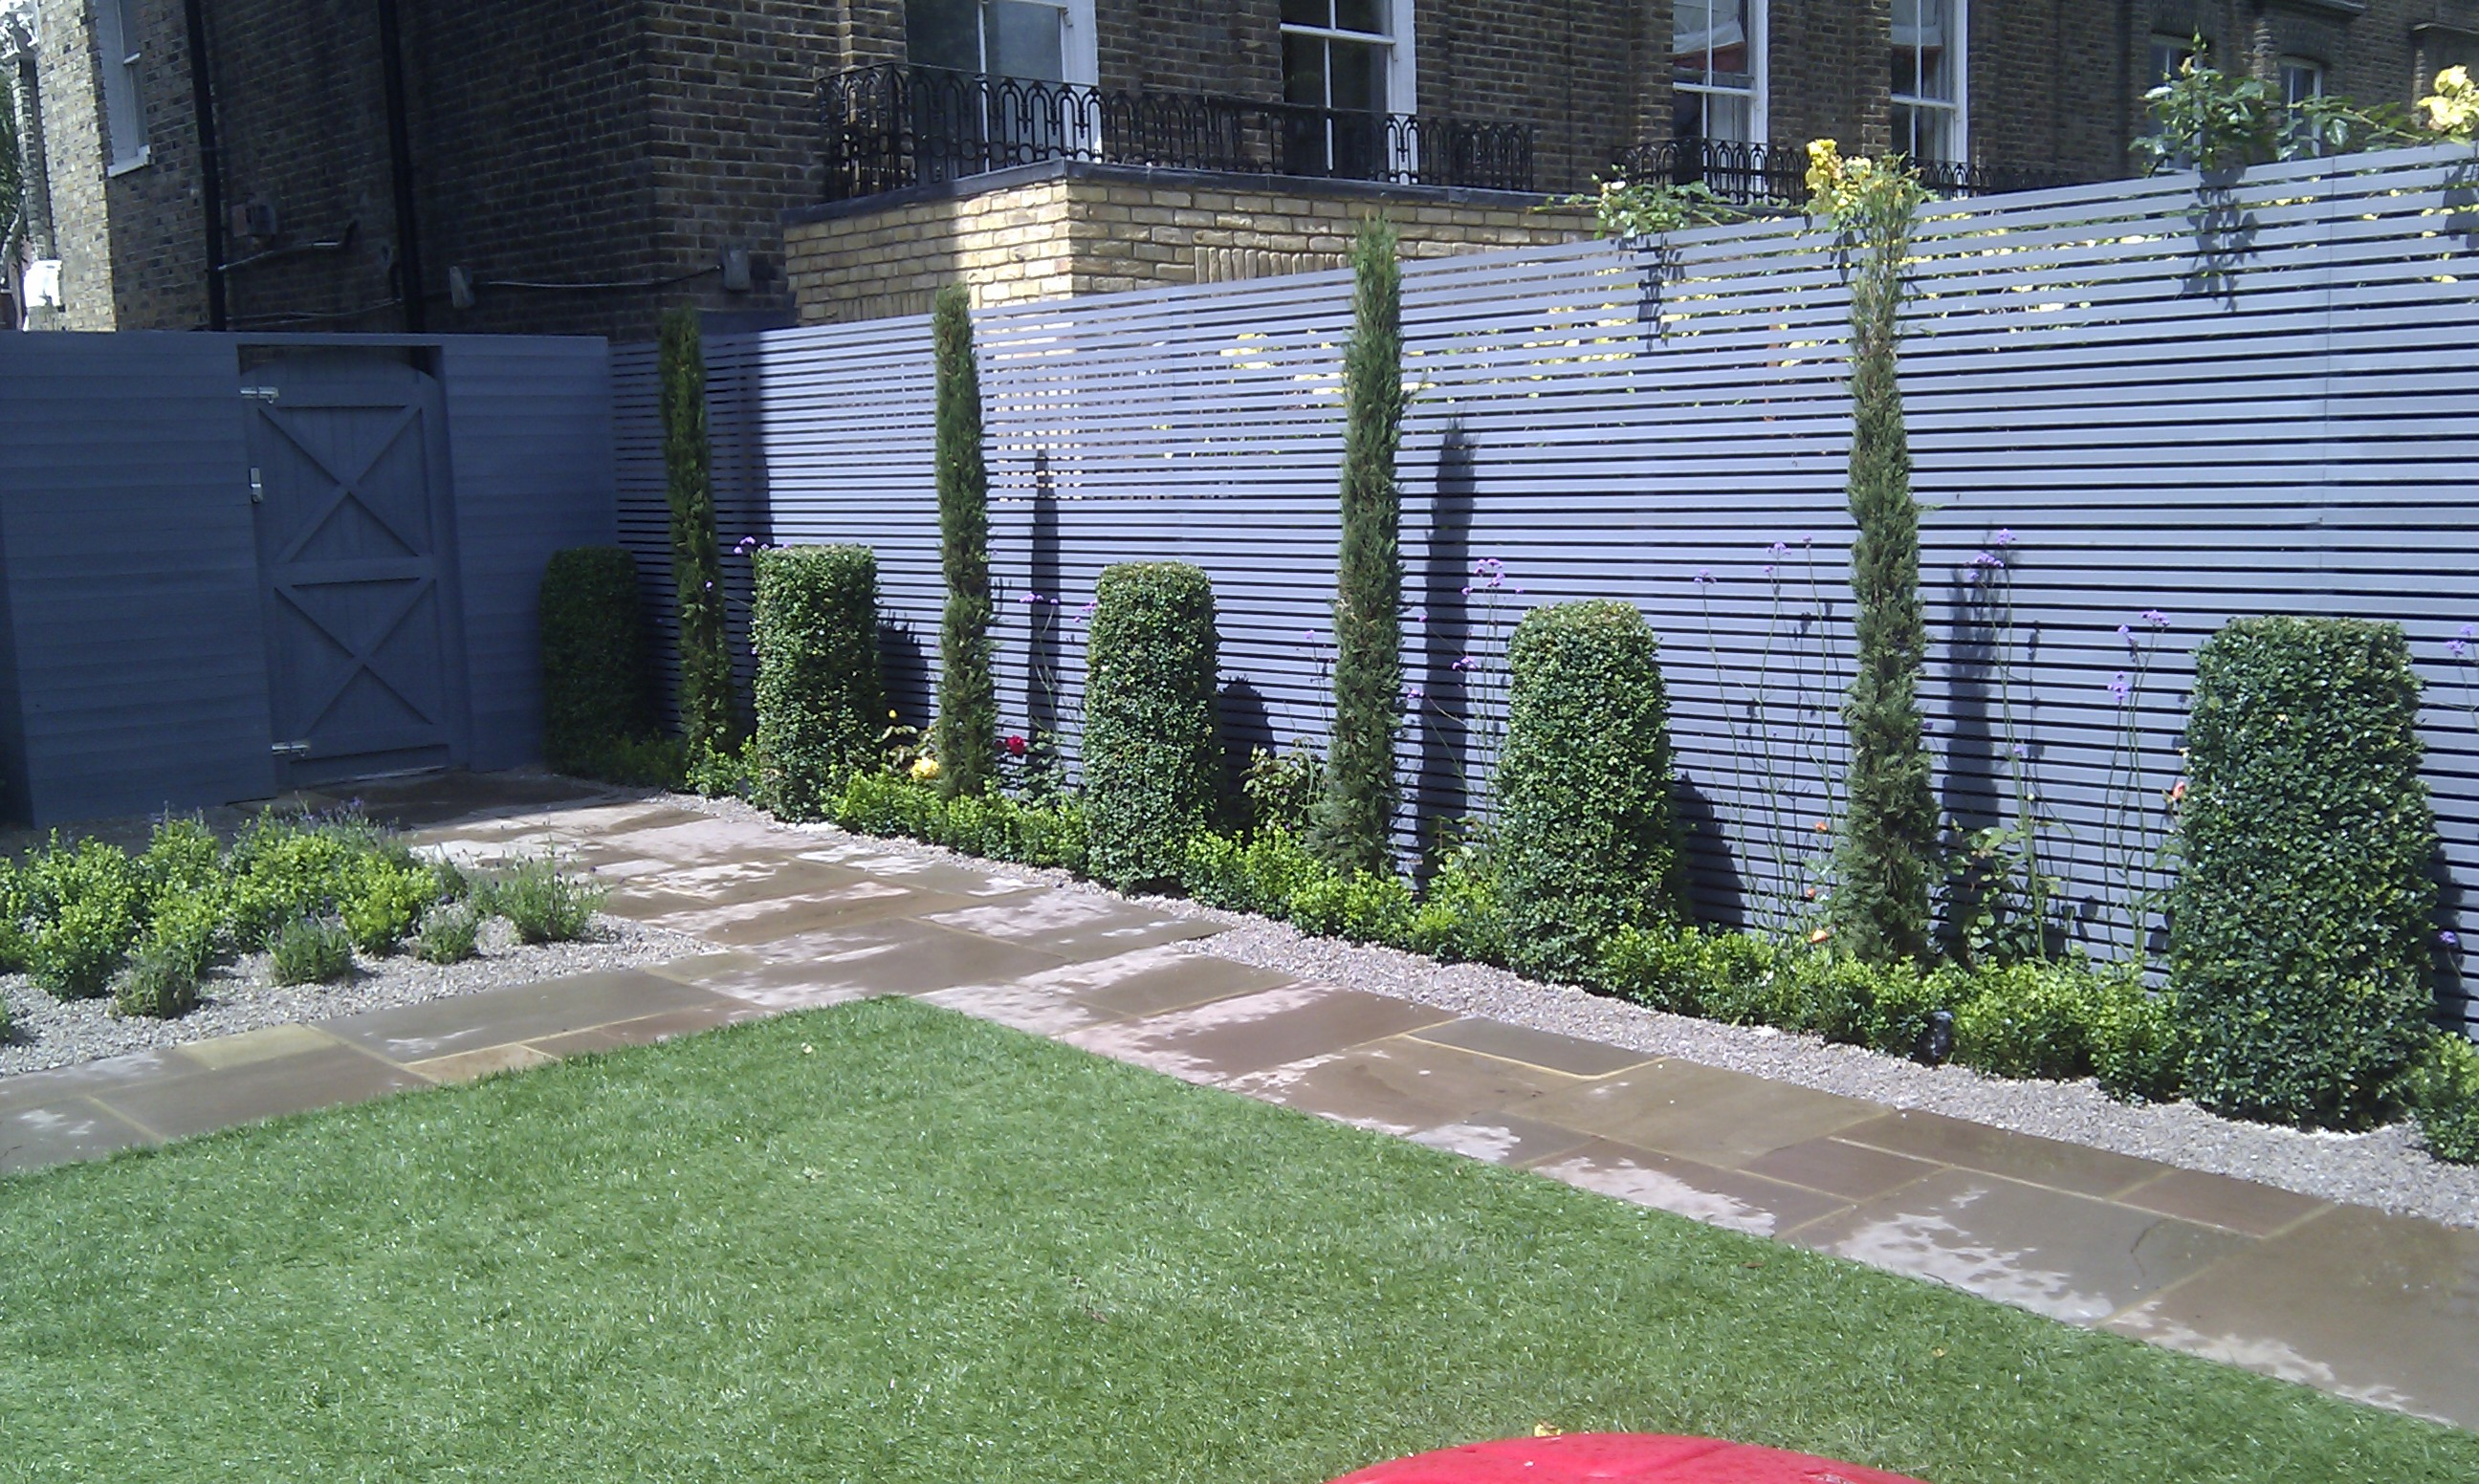 Sandstone archives london garden blog for Gardens with decking and paving